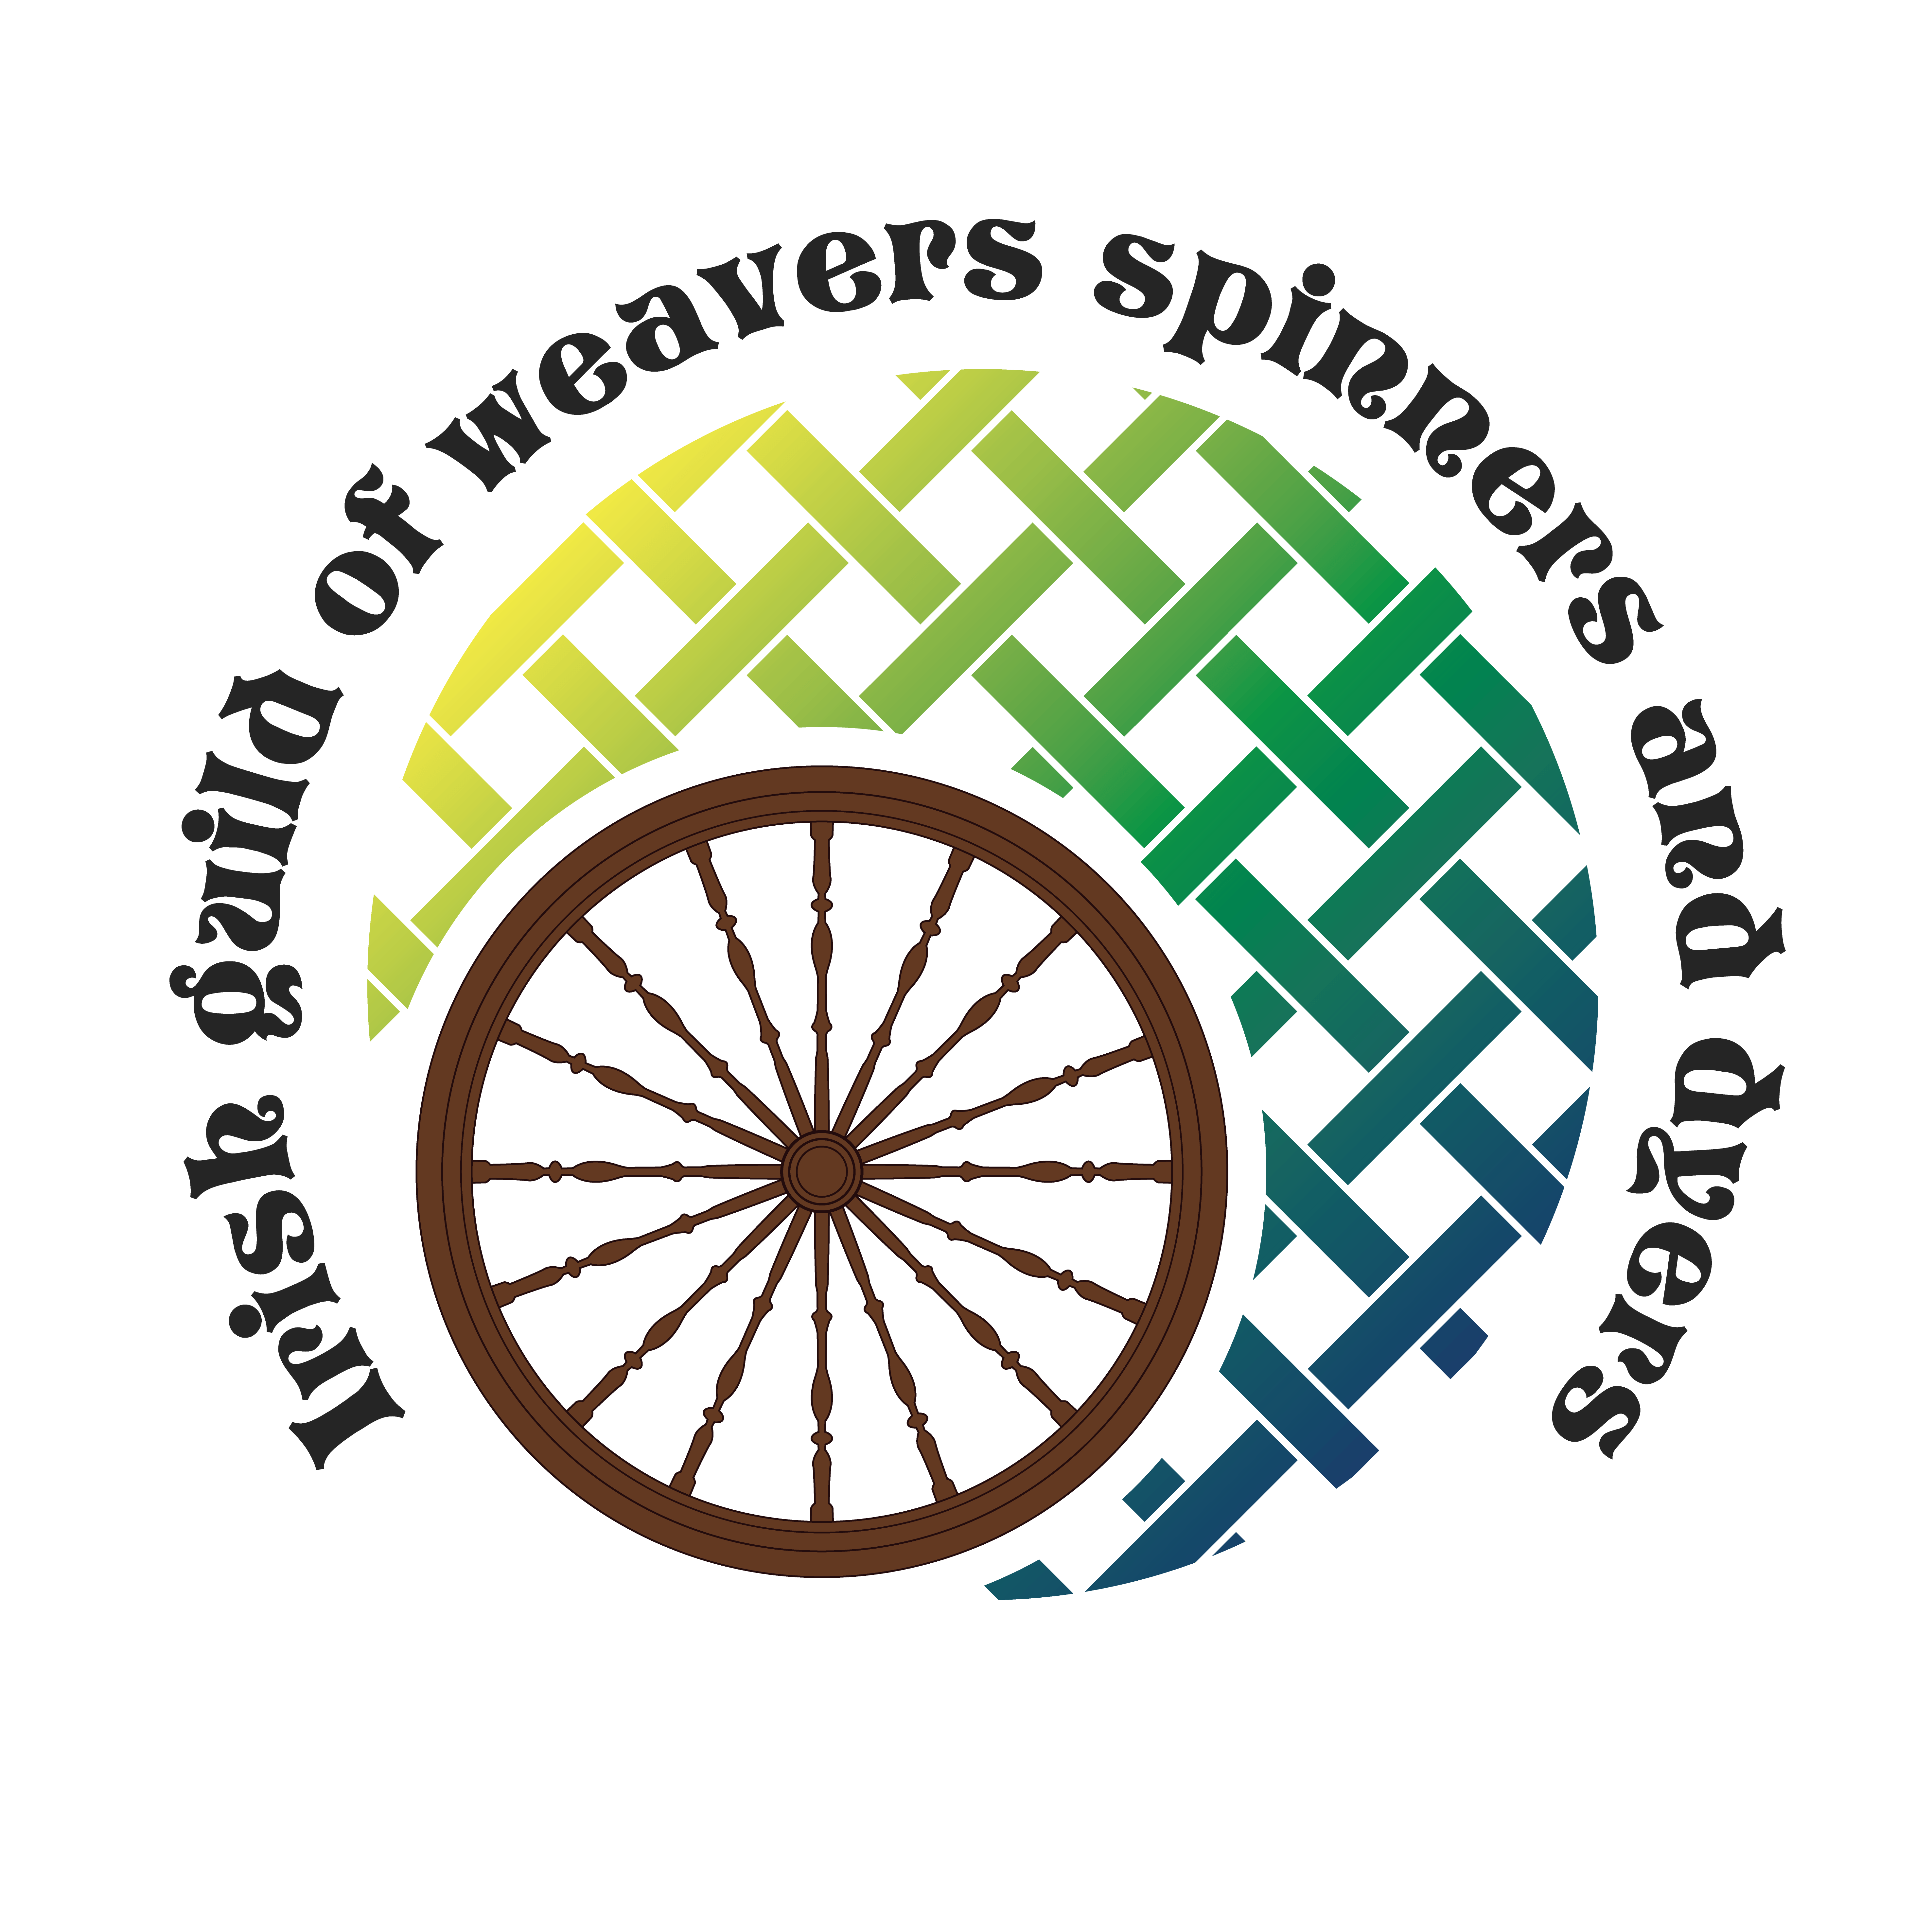 The Irish Guild of Weavers, Spinners, and Dyers